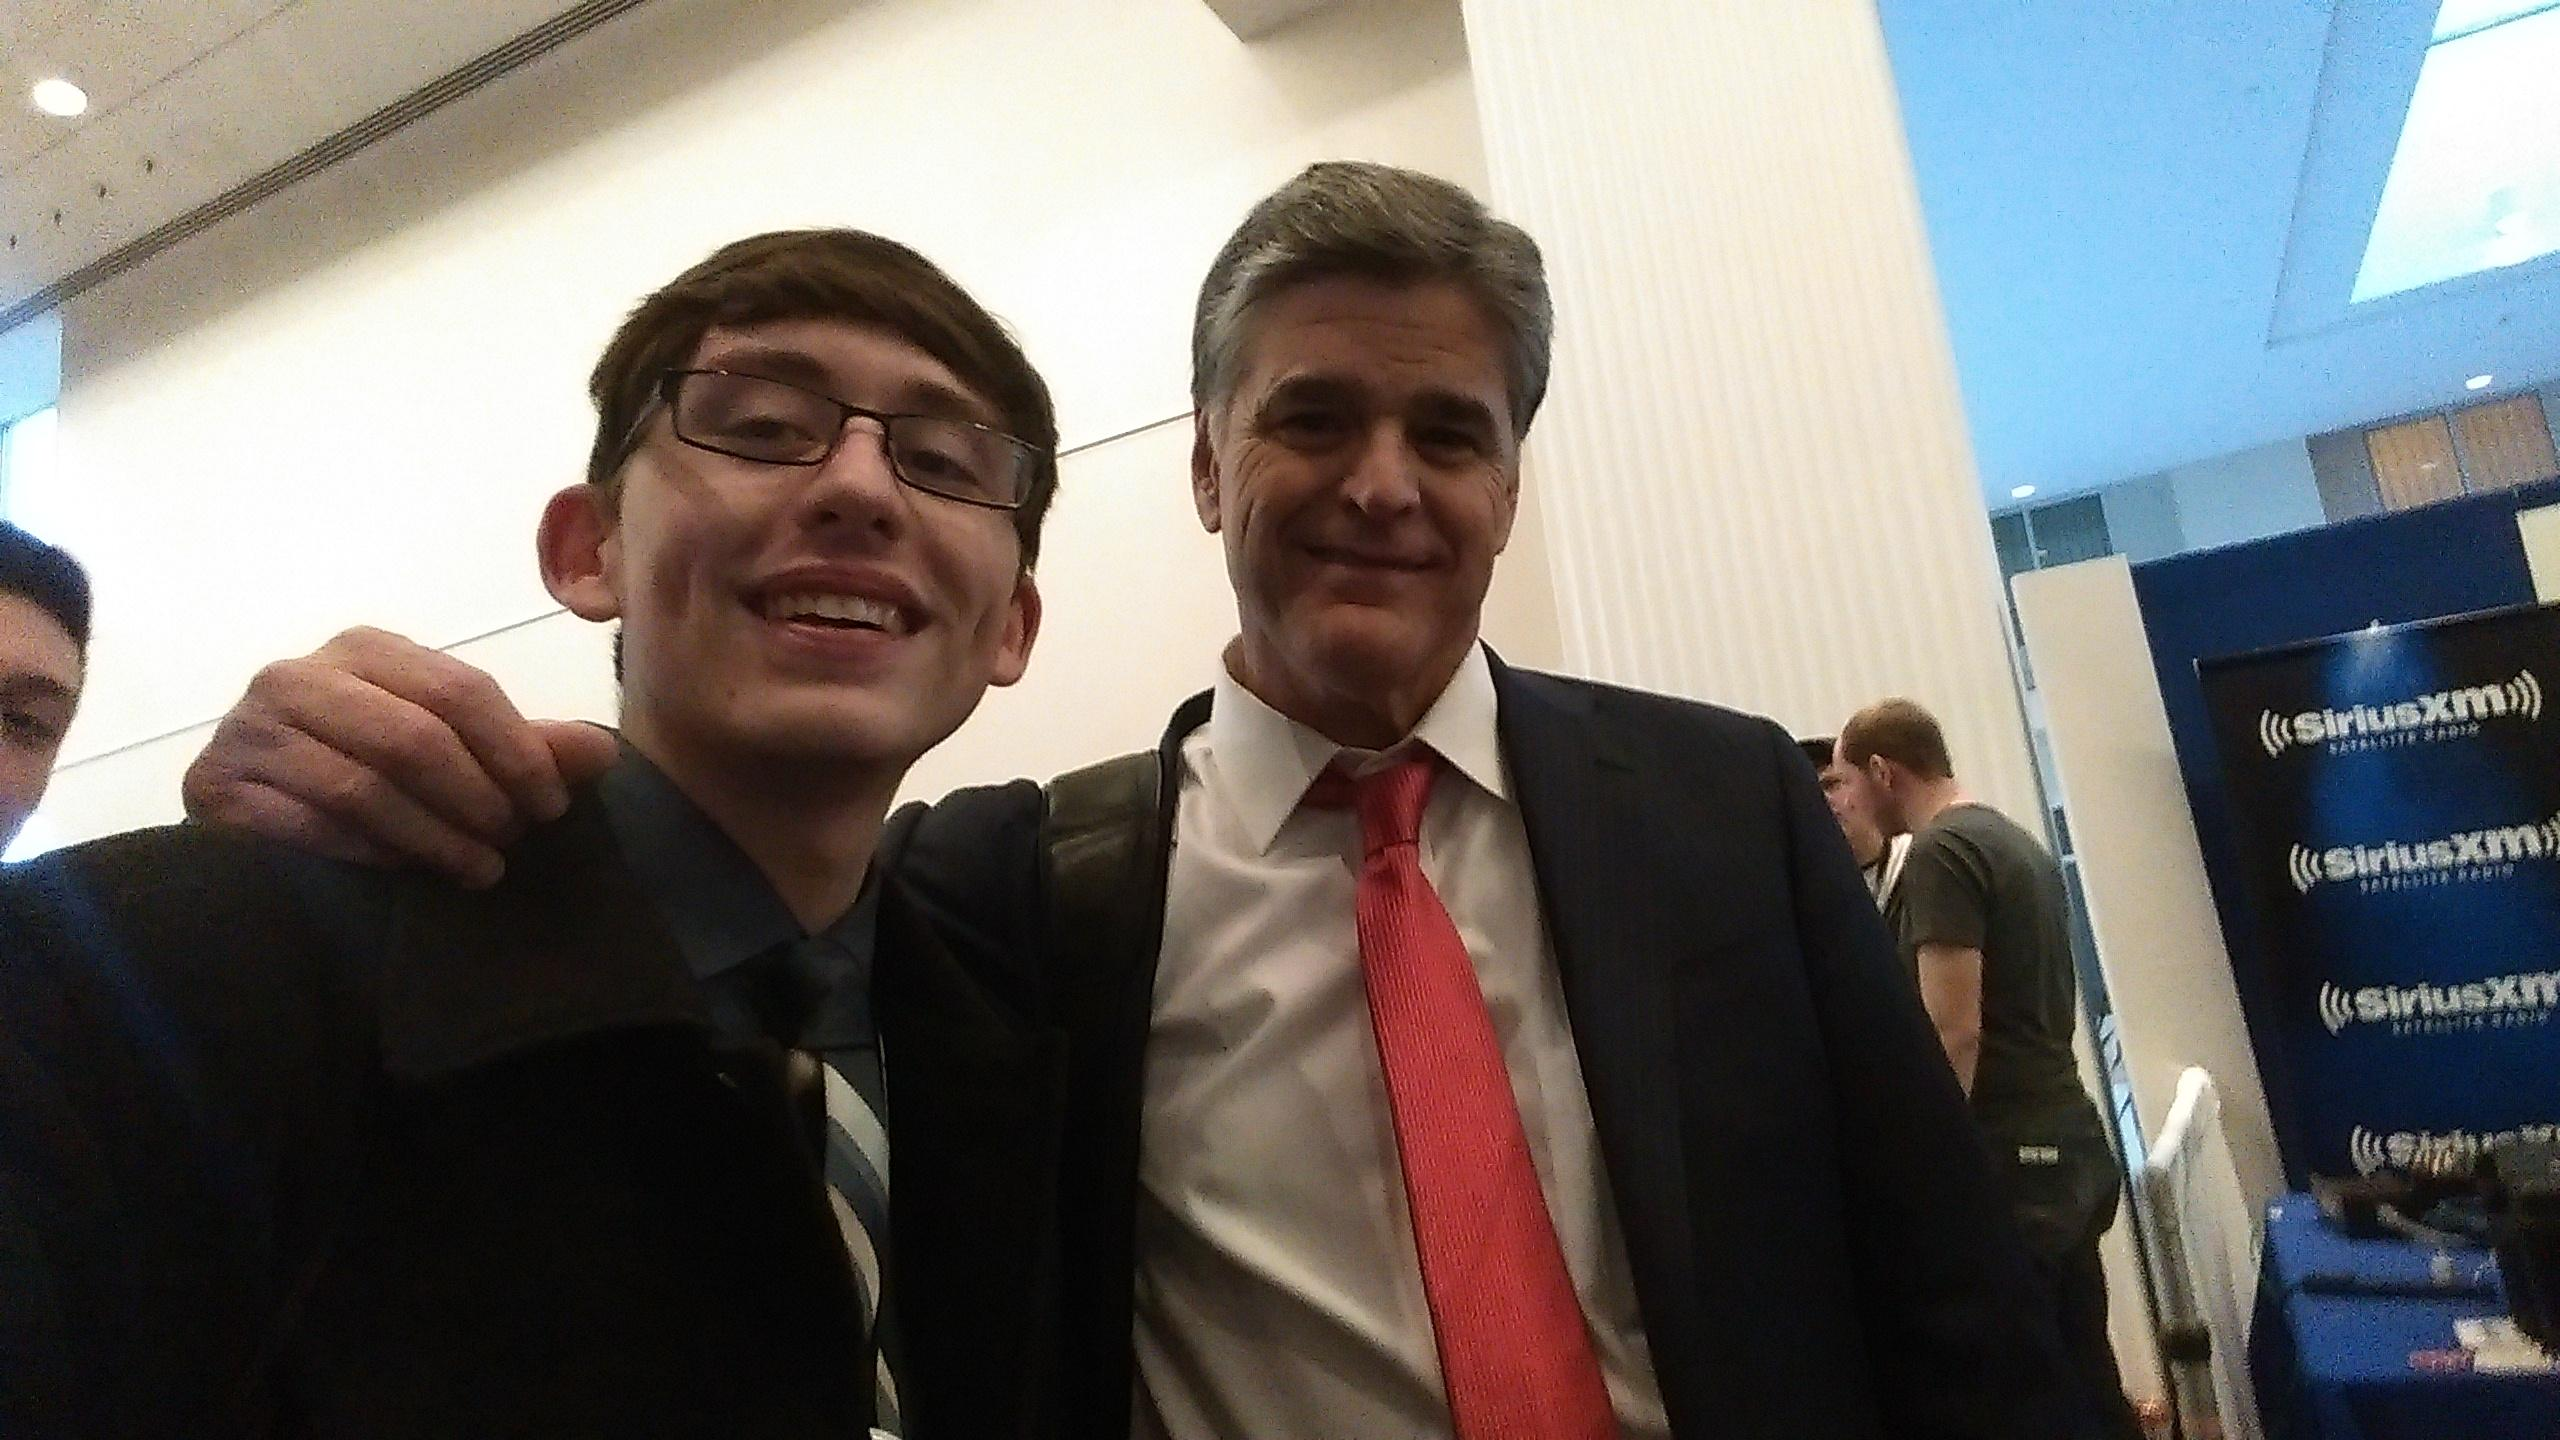 Matteo's 'Selfie' with Sean Hannity